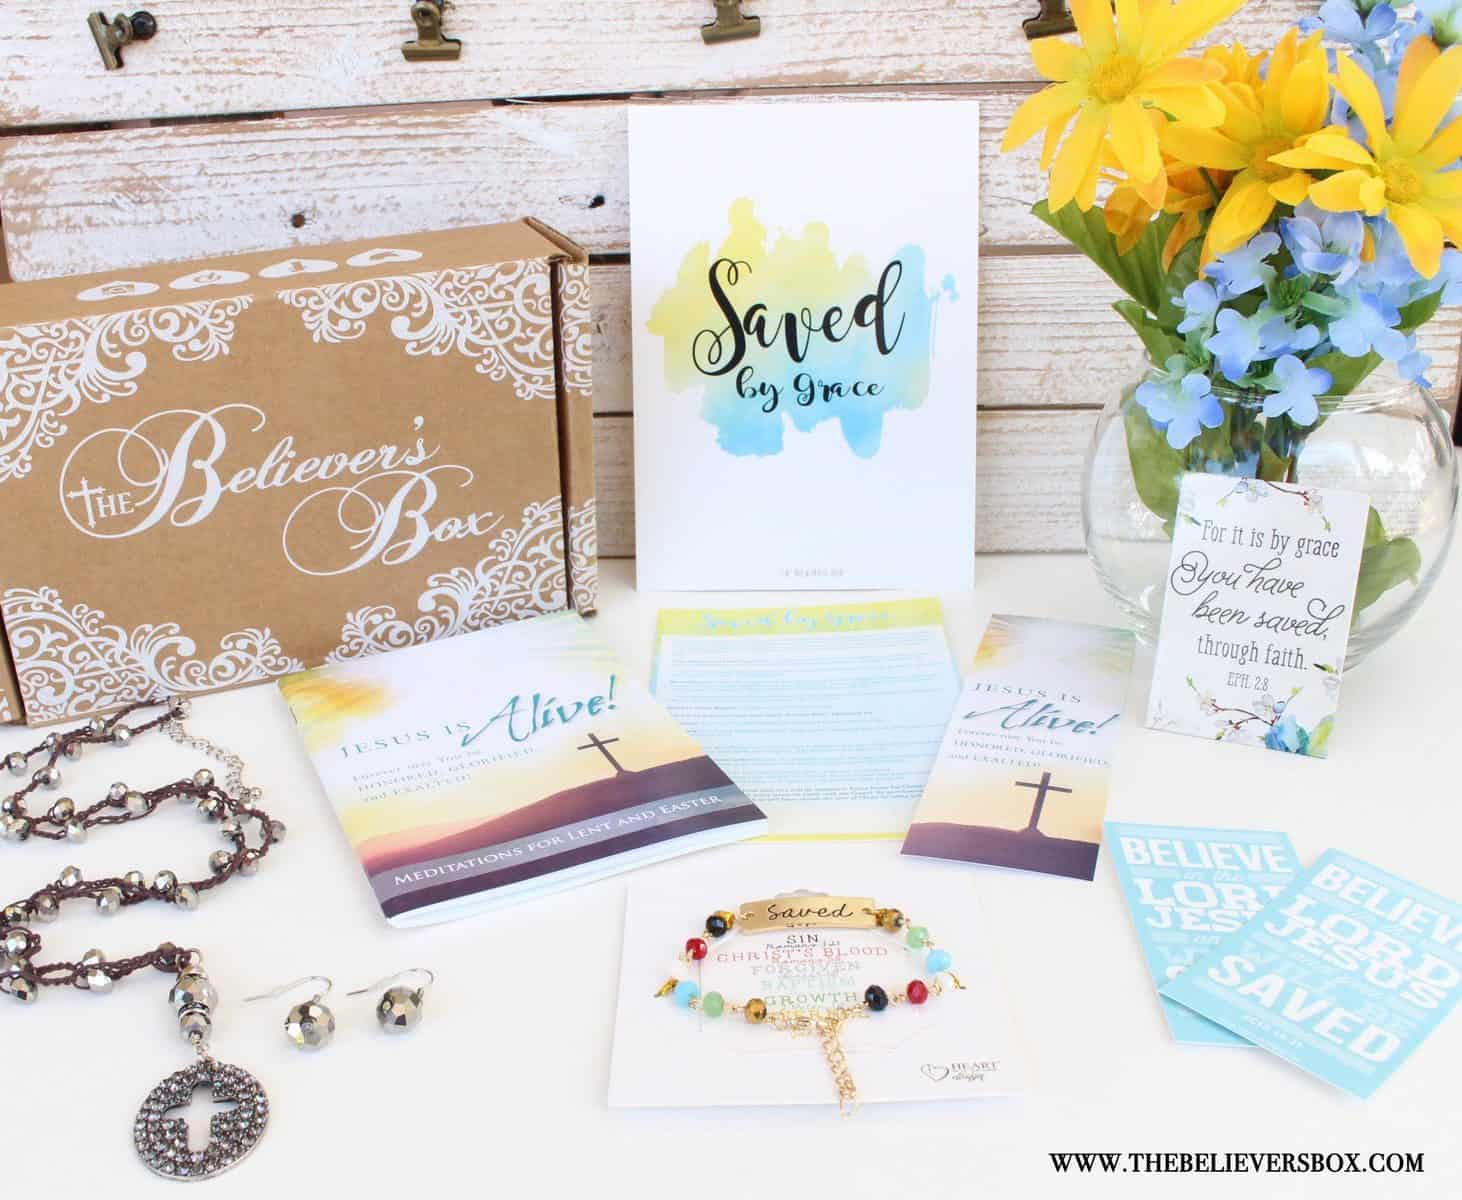 The Believer's Box Subscription Box